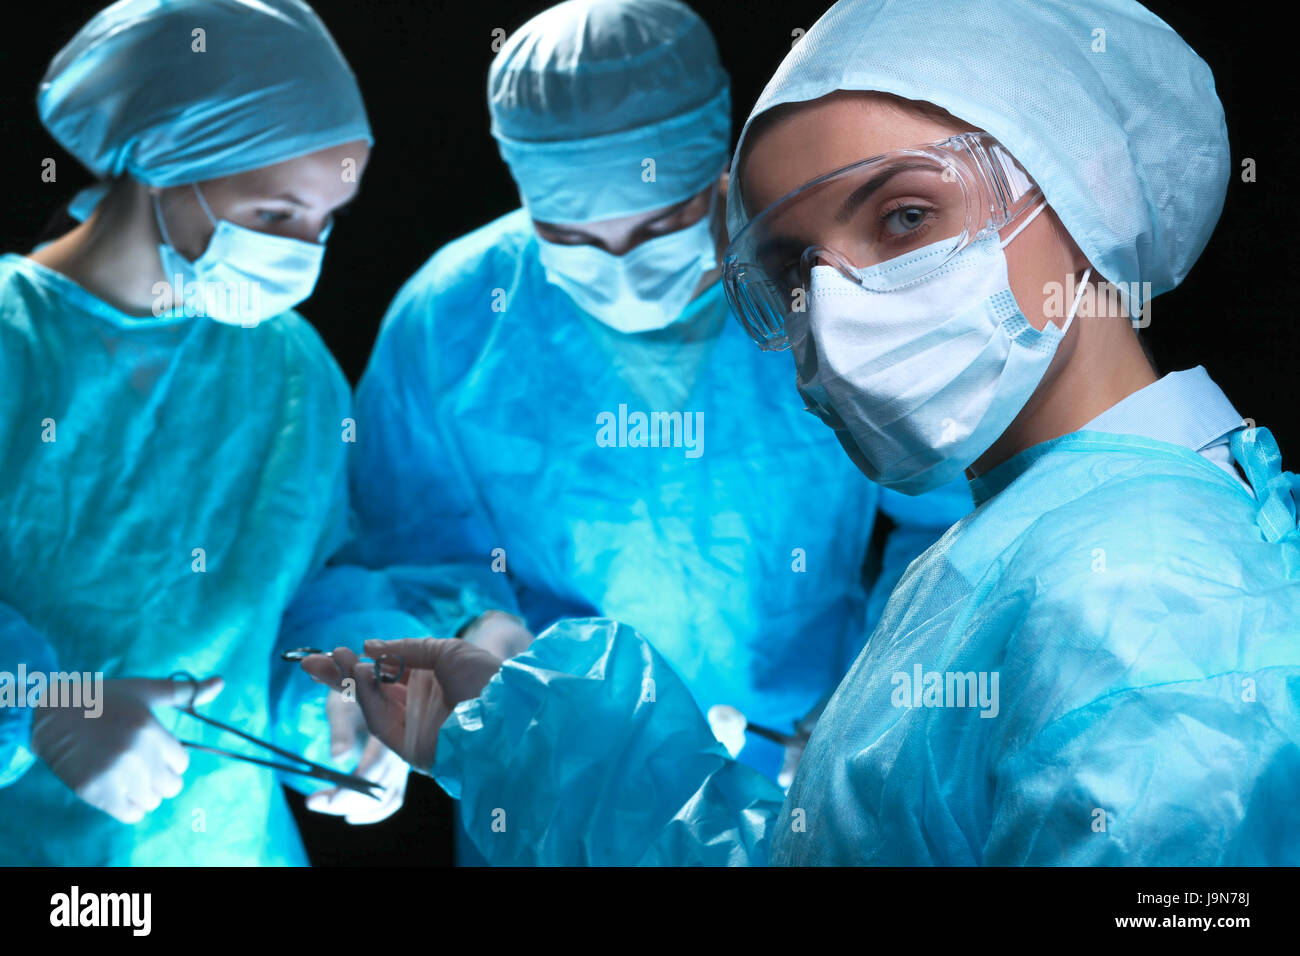 Three surgeons at work operating in surgical theater saving patient and looking at life monitor. Resuscitation medicine - Stock Image